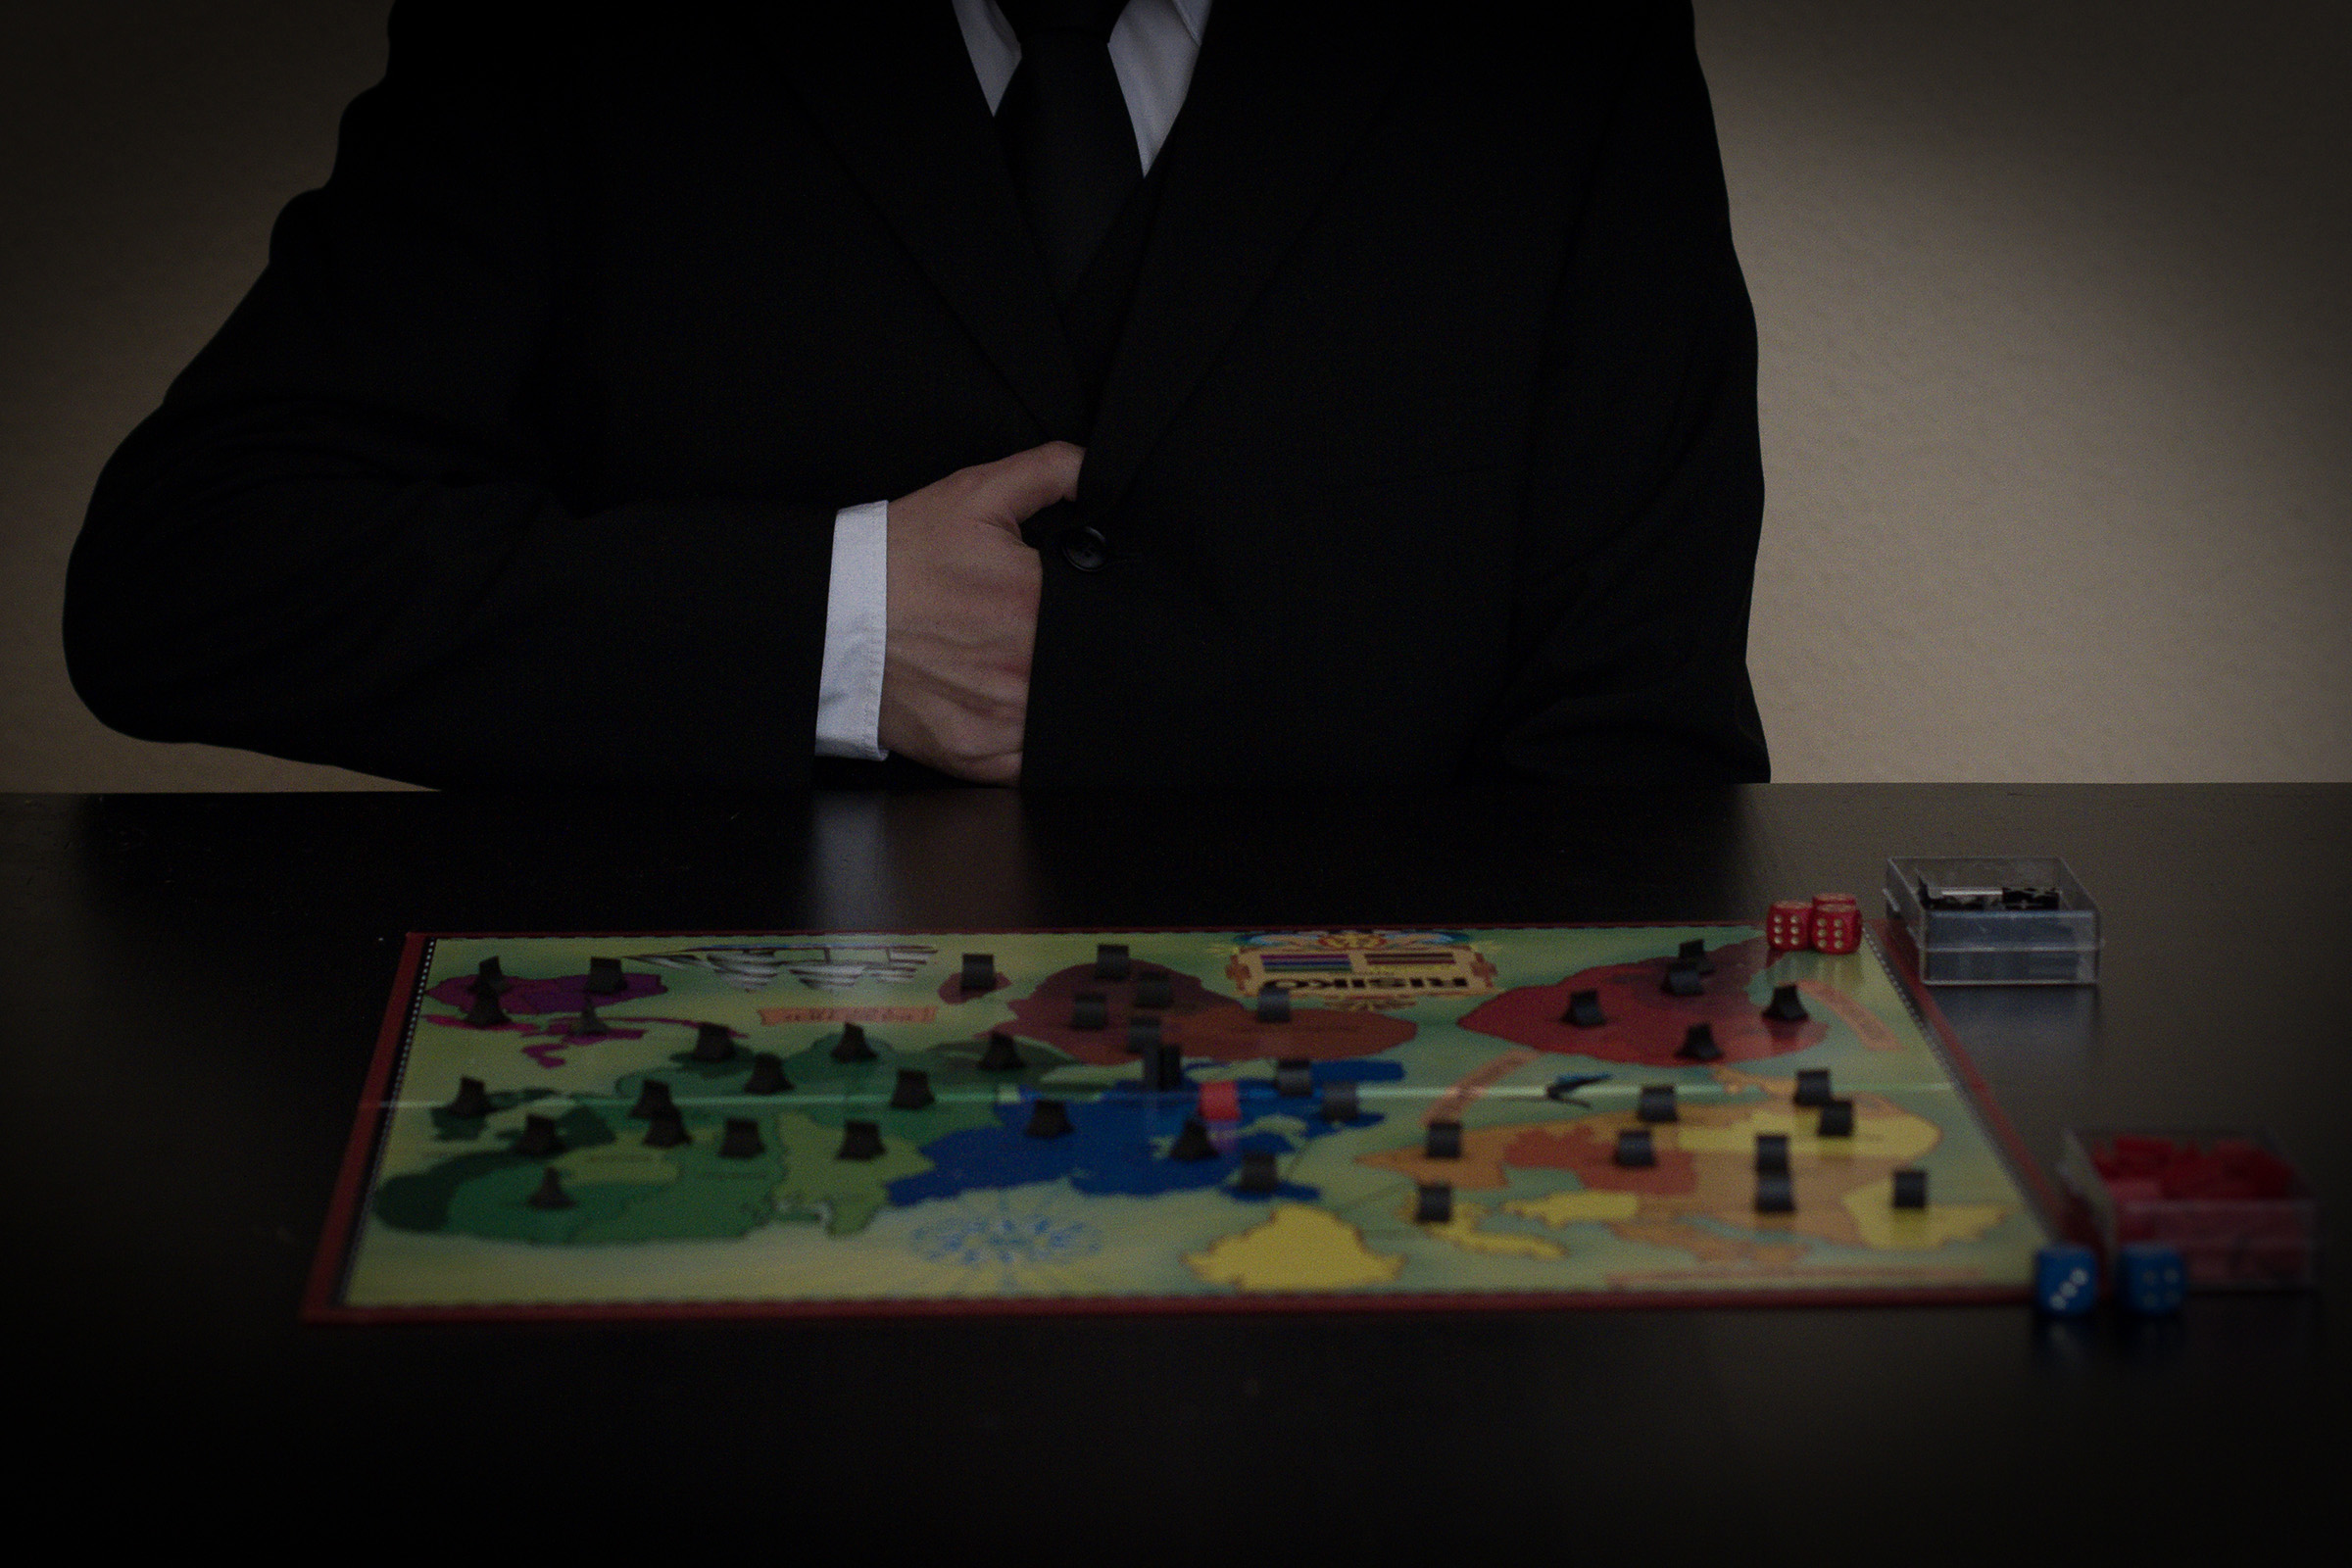 man, male, self, selfpic, selfportrait, risiko, game © André Schunert